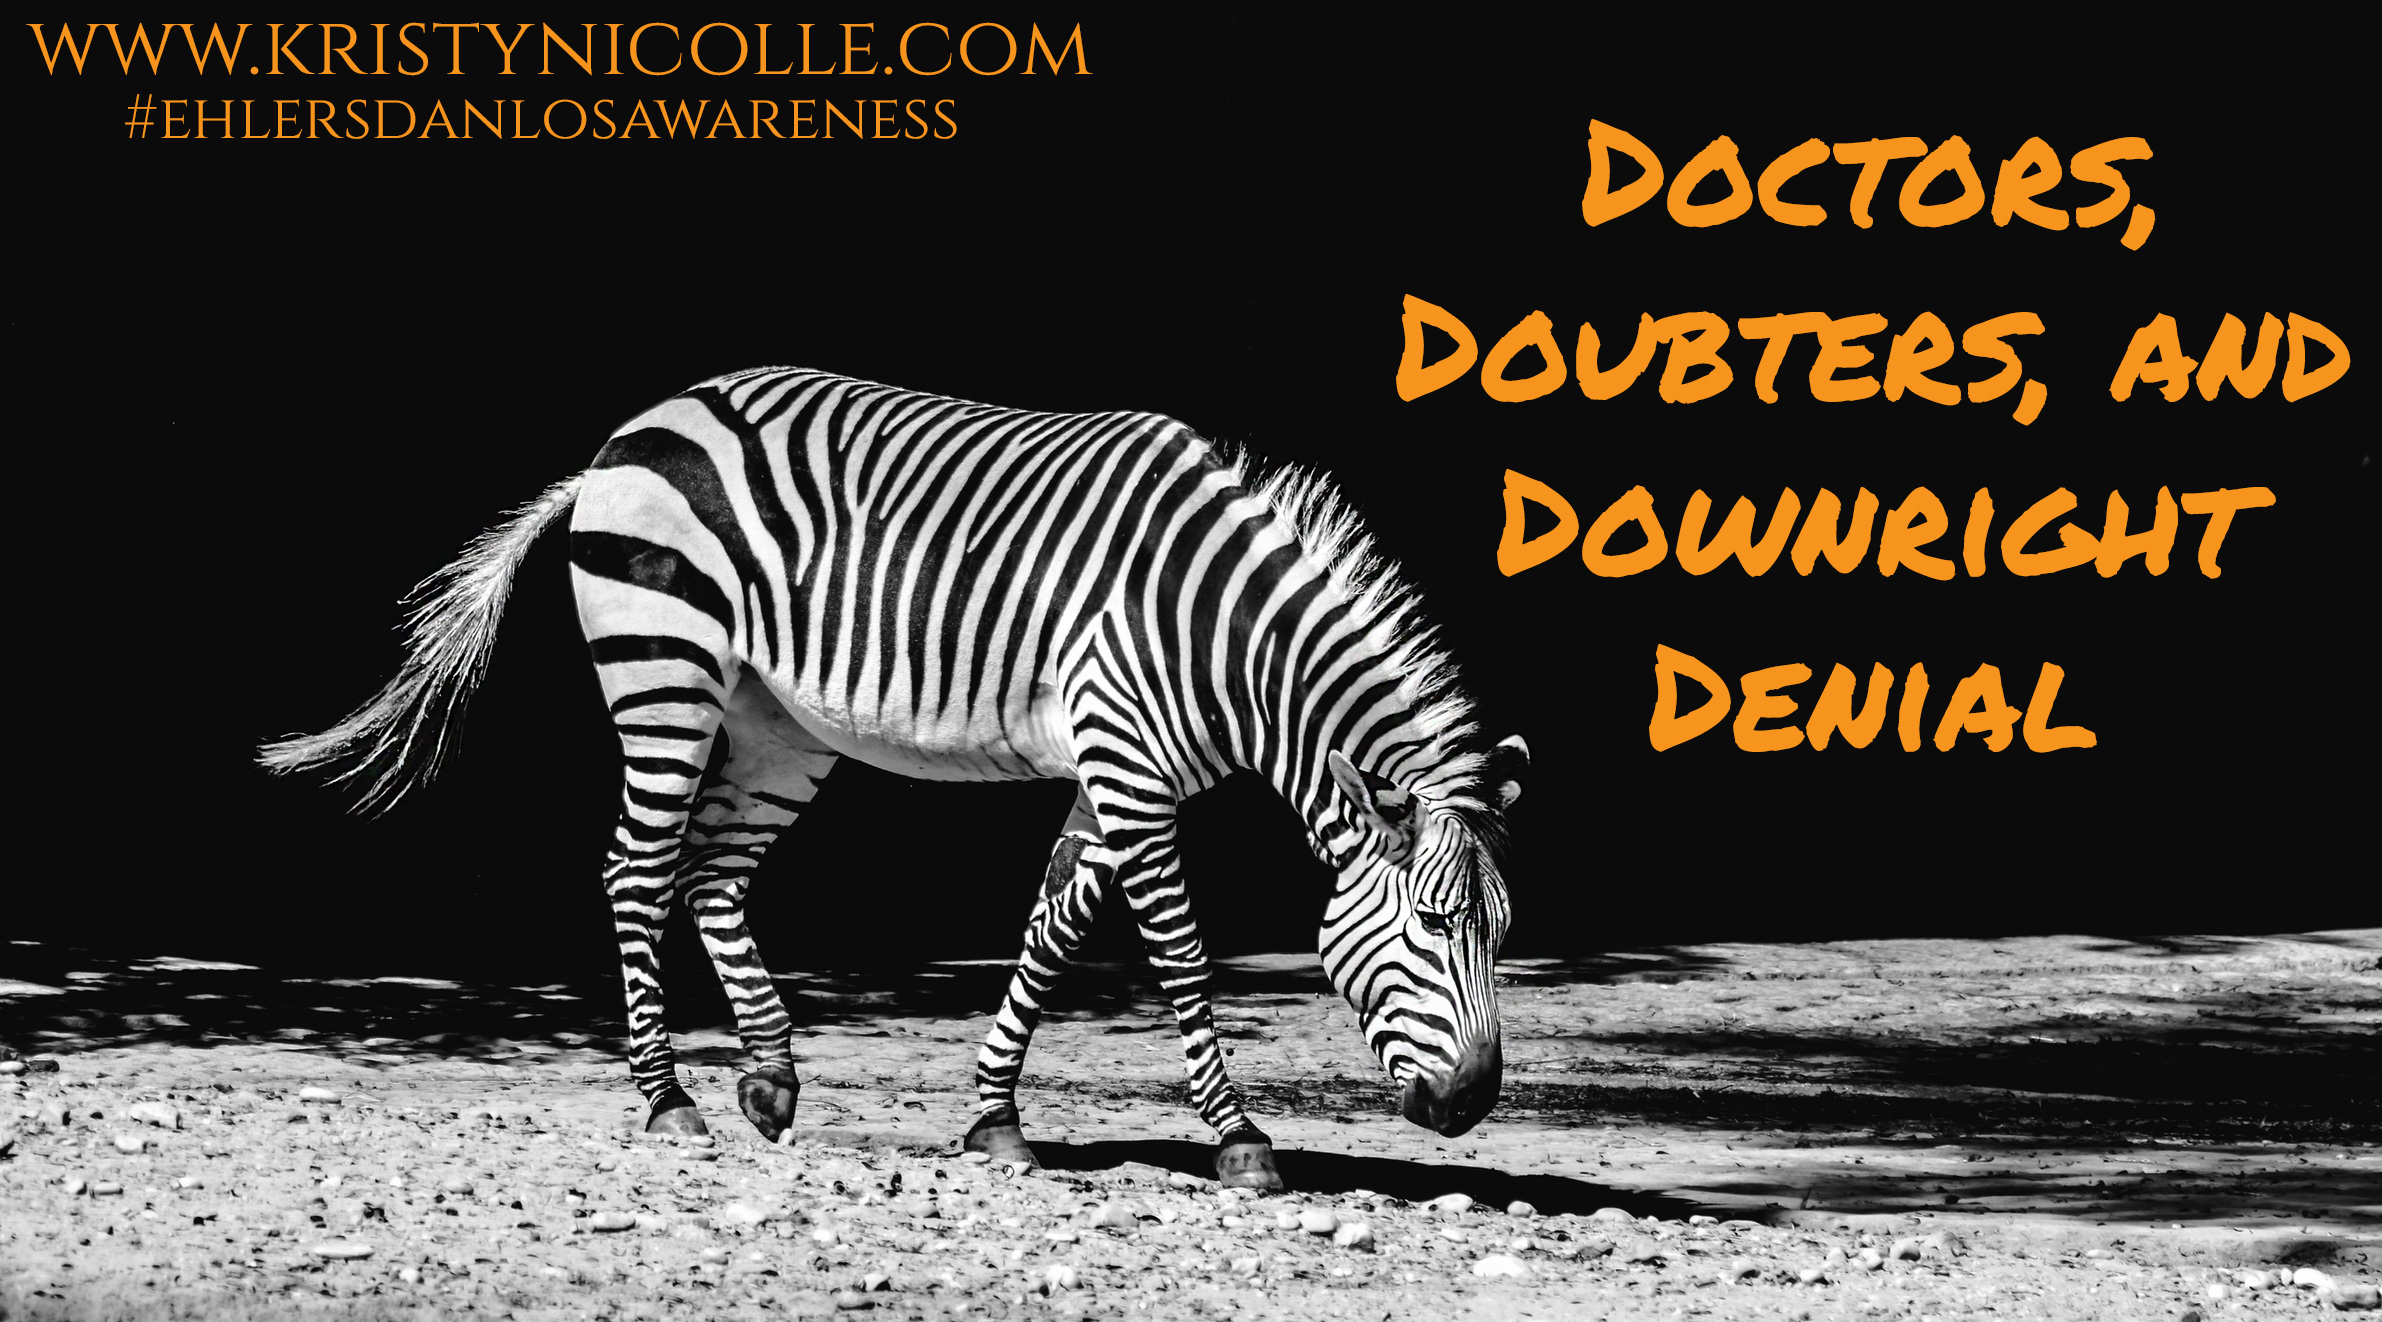 Ehlers Danlos Syndrome- Doctors, Doubters, and Downright Denial by Kristy Nicolle